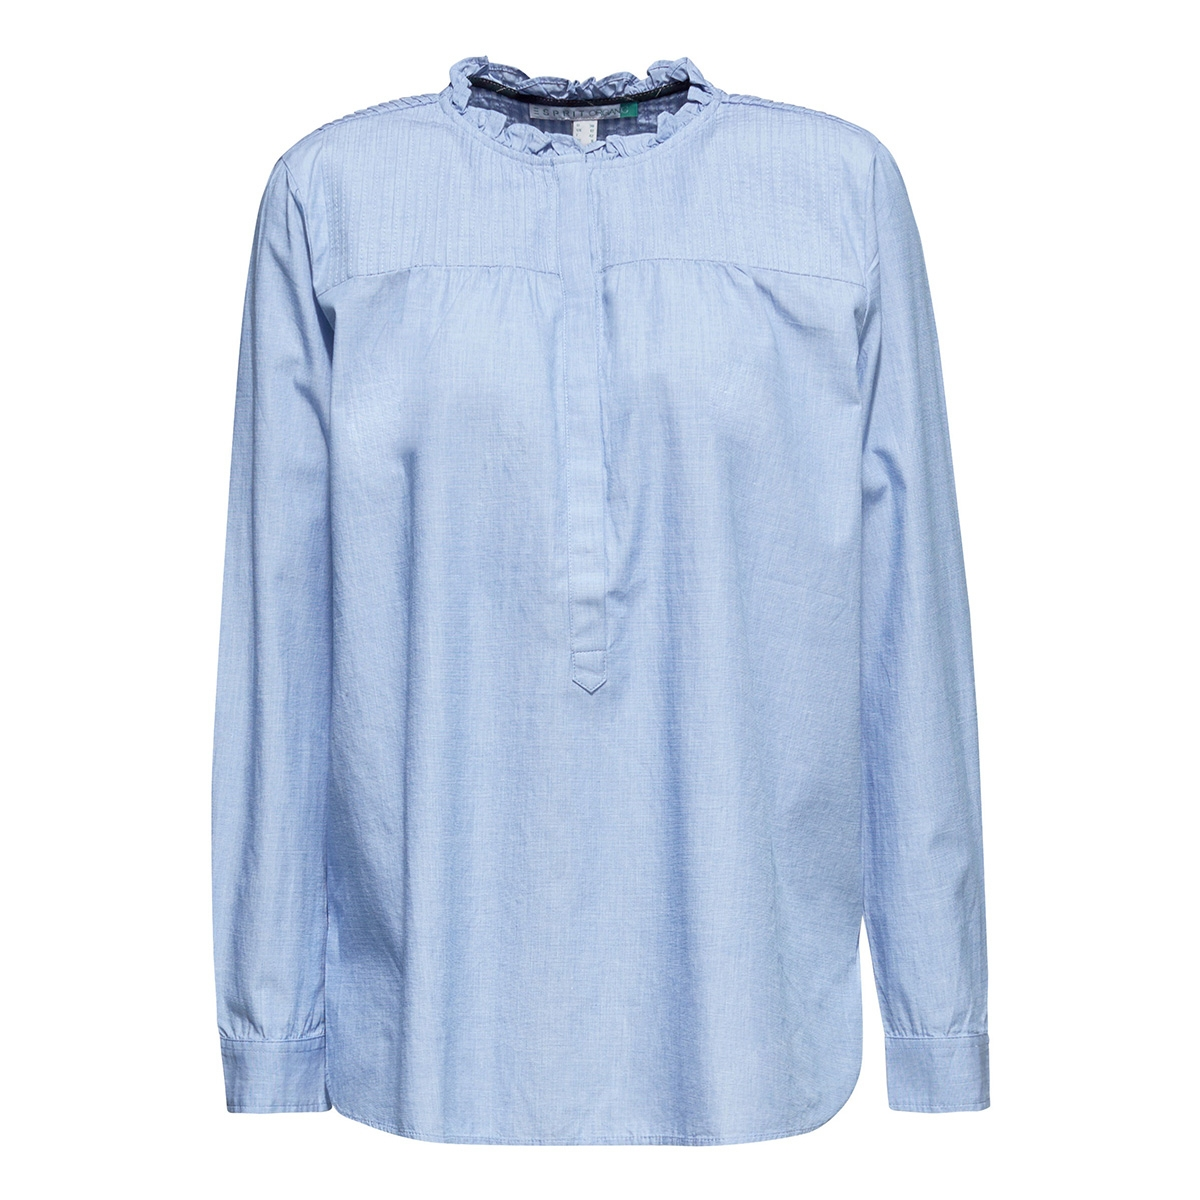 chambray blouse 109ee1f004 esprit blouse e440